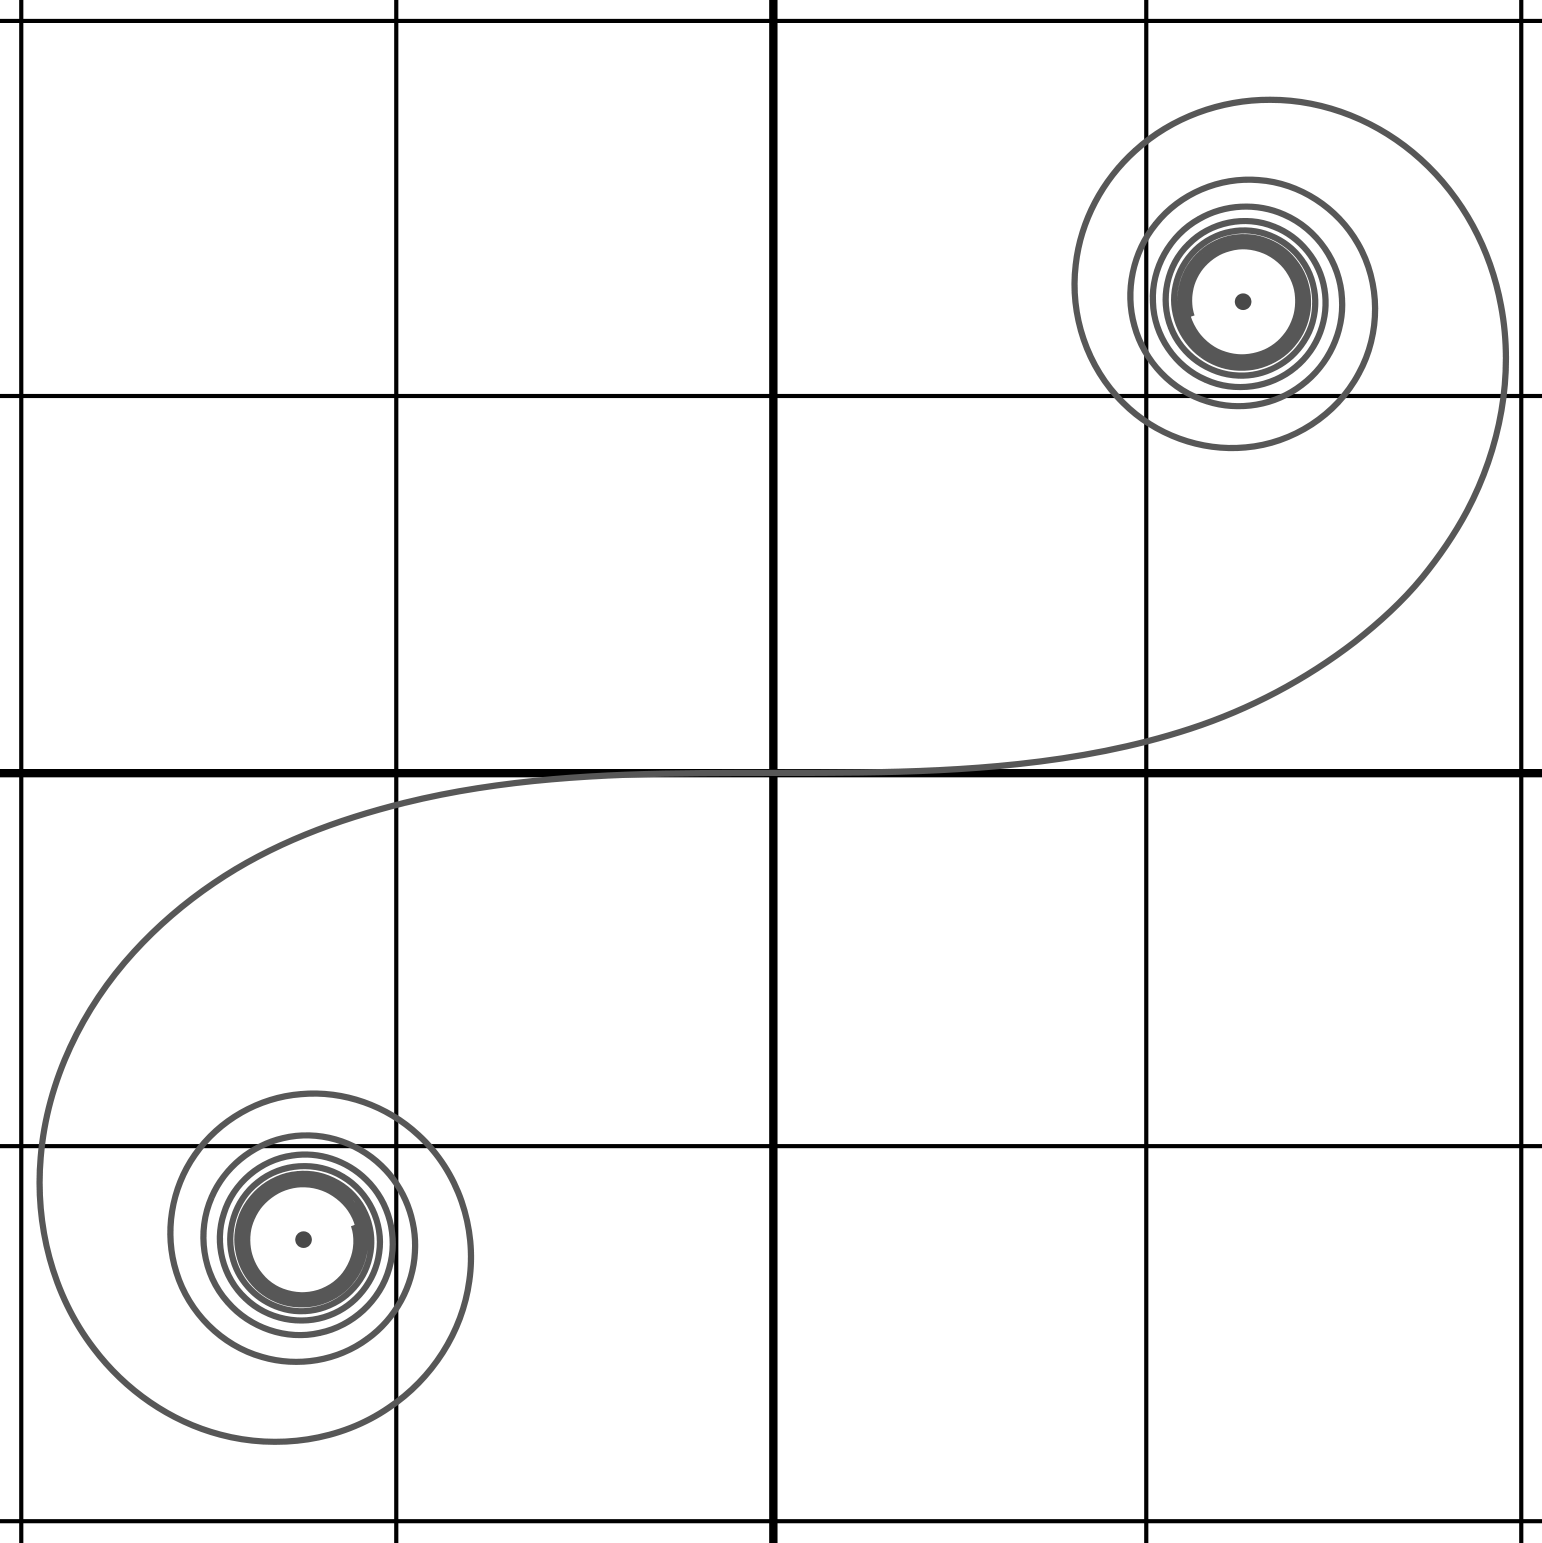 Bezier curves